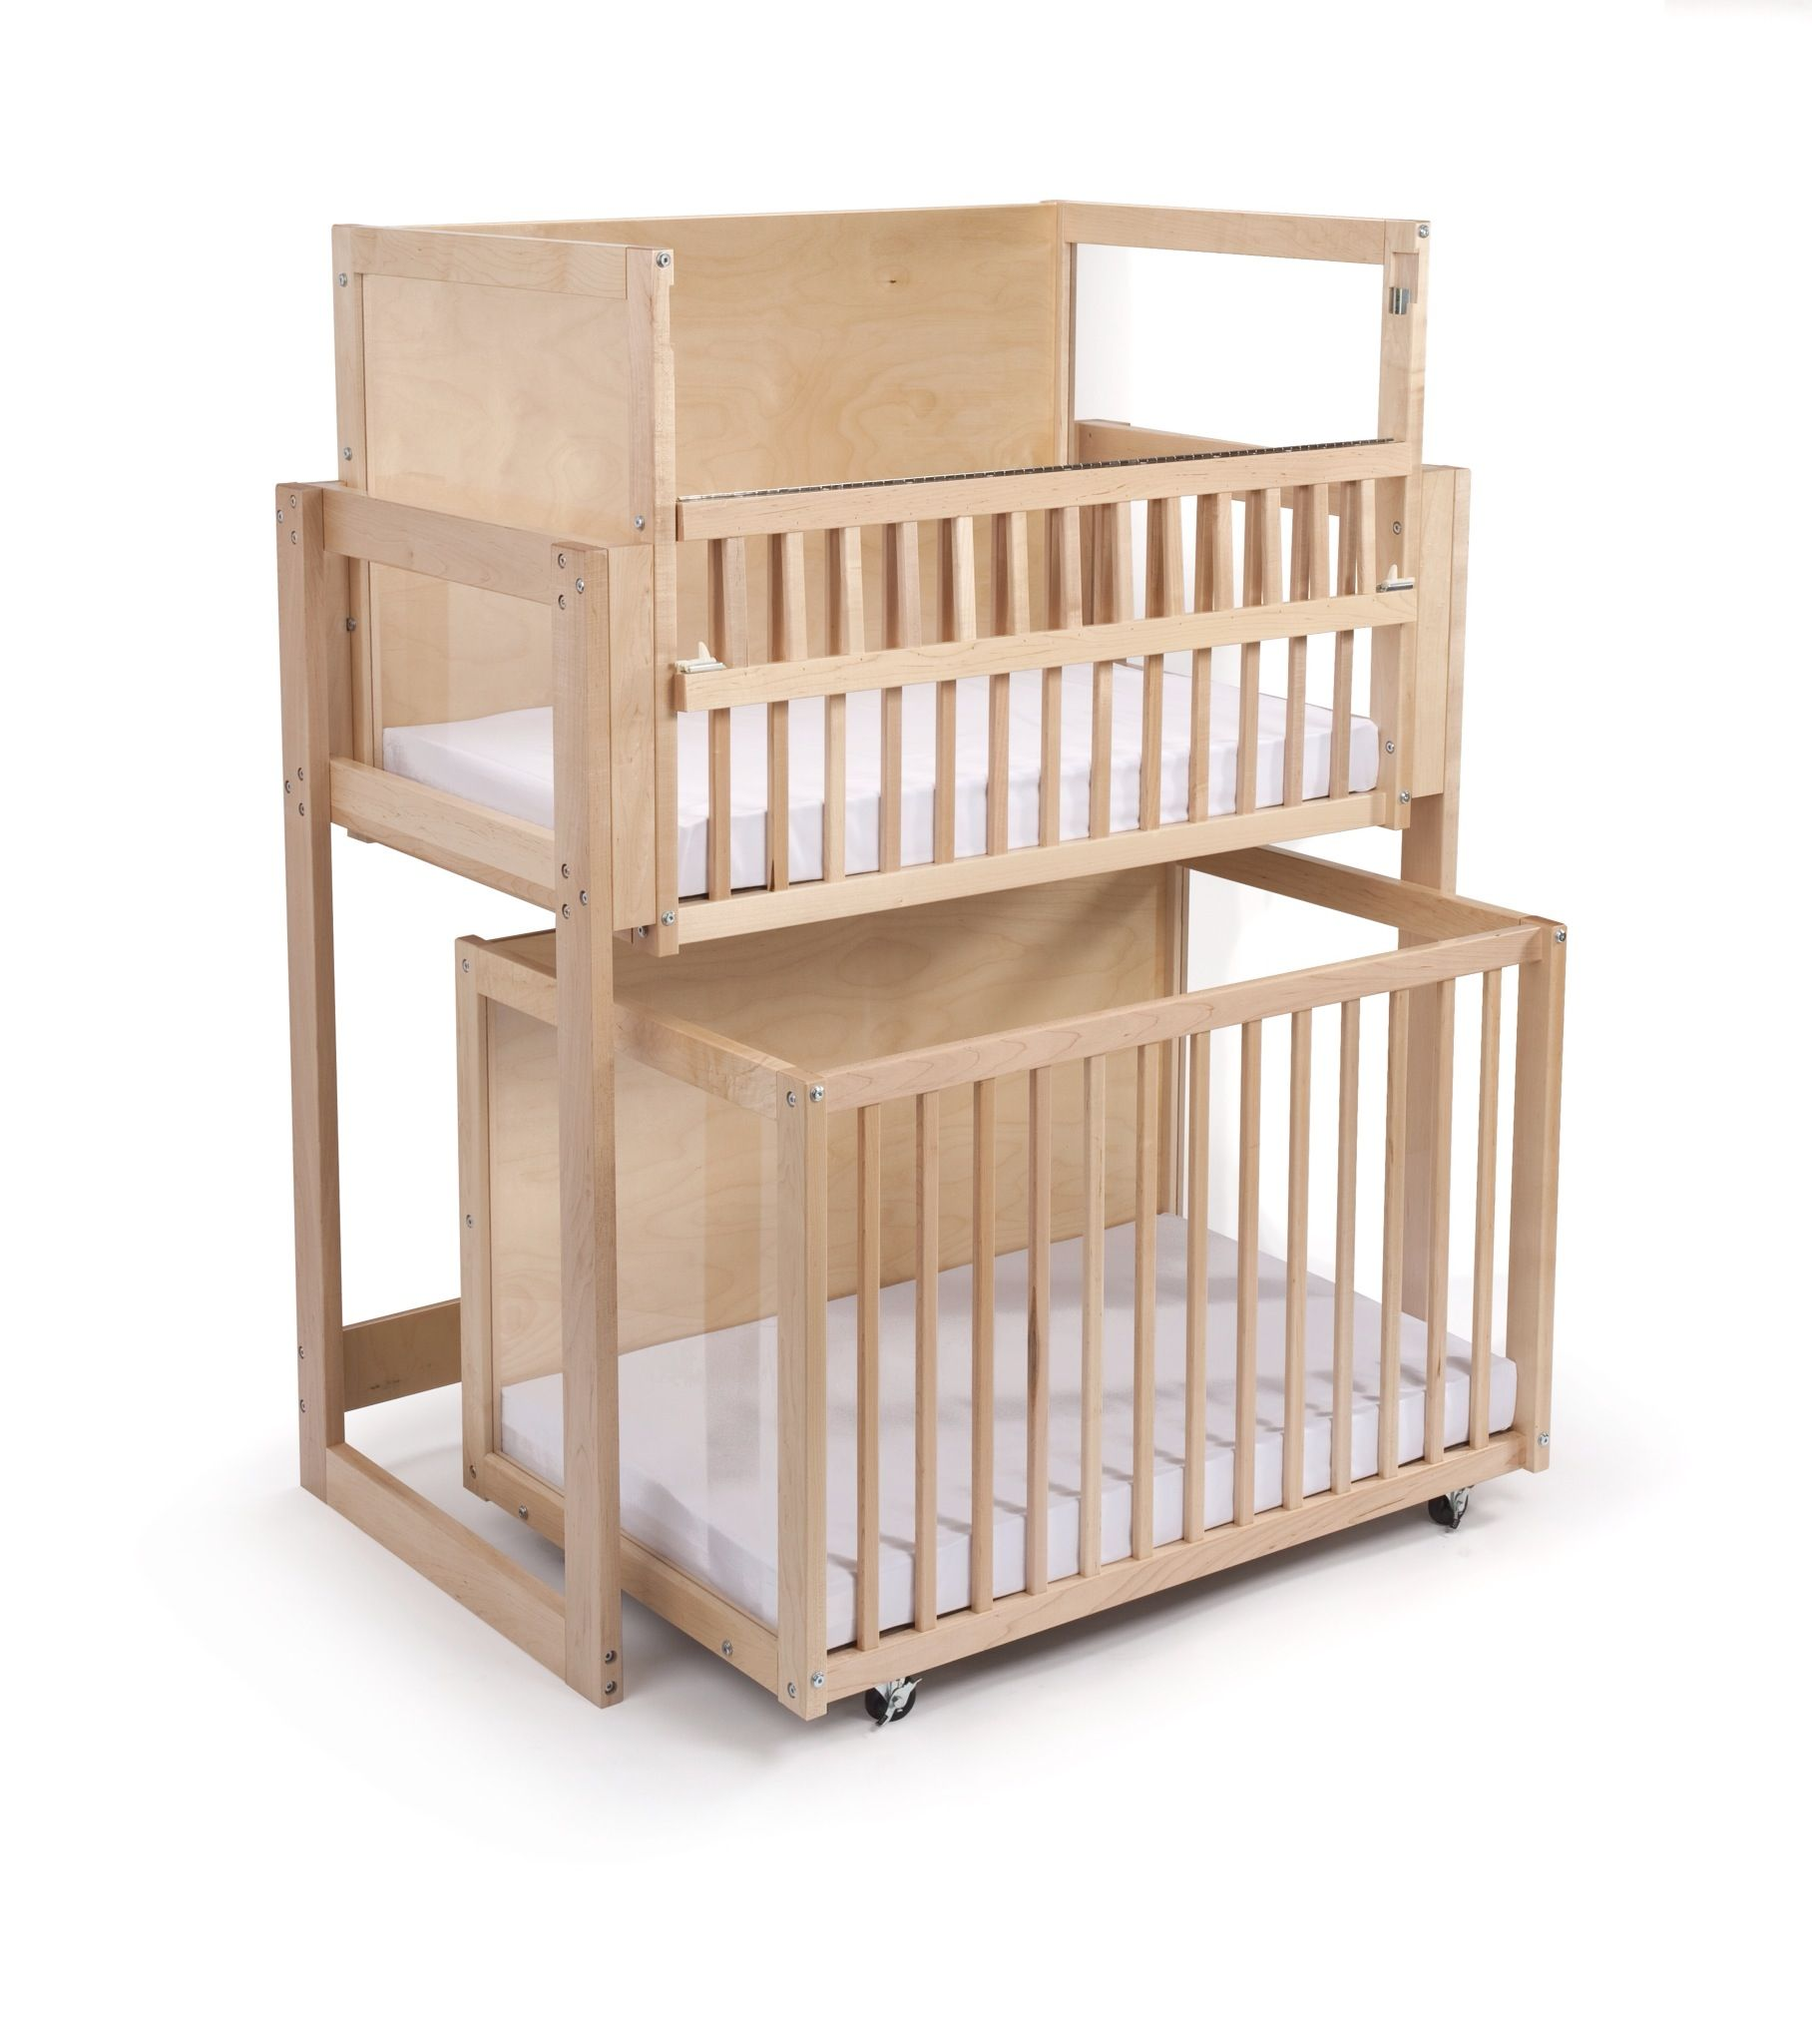 Double Decker Bunk Bed Stacked Cribs Must Save E Right